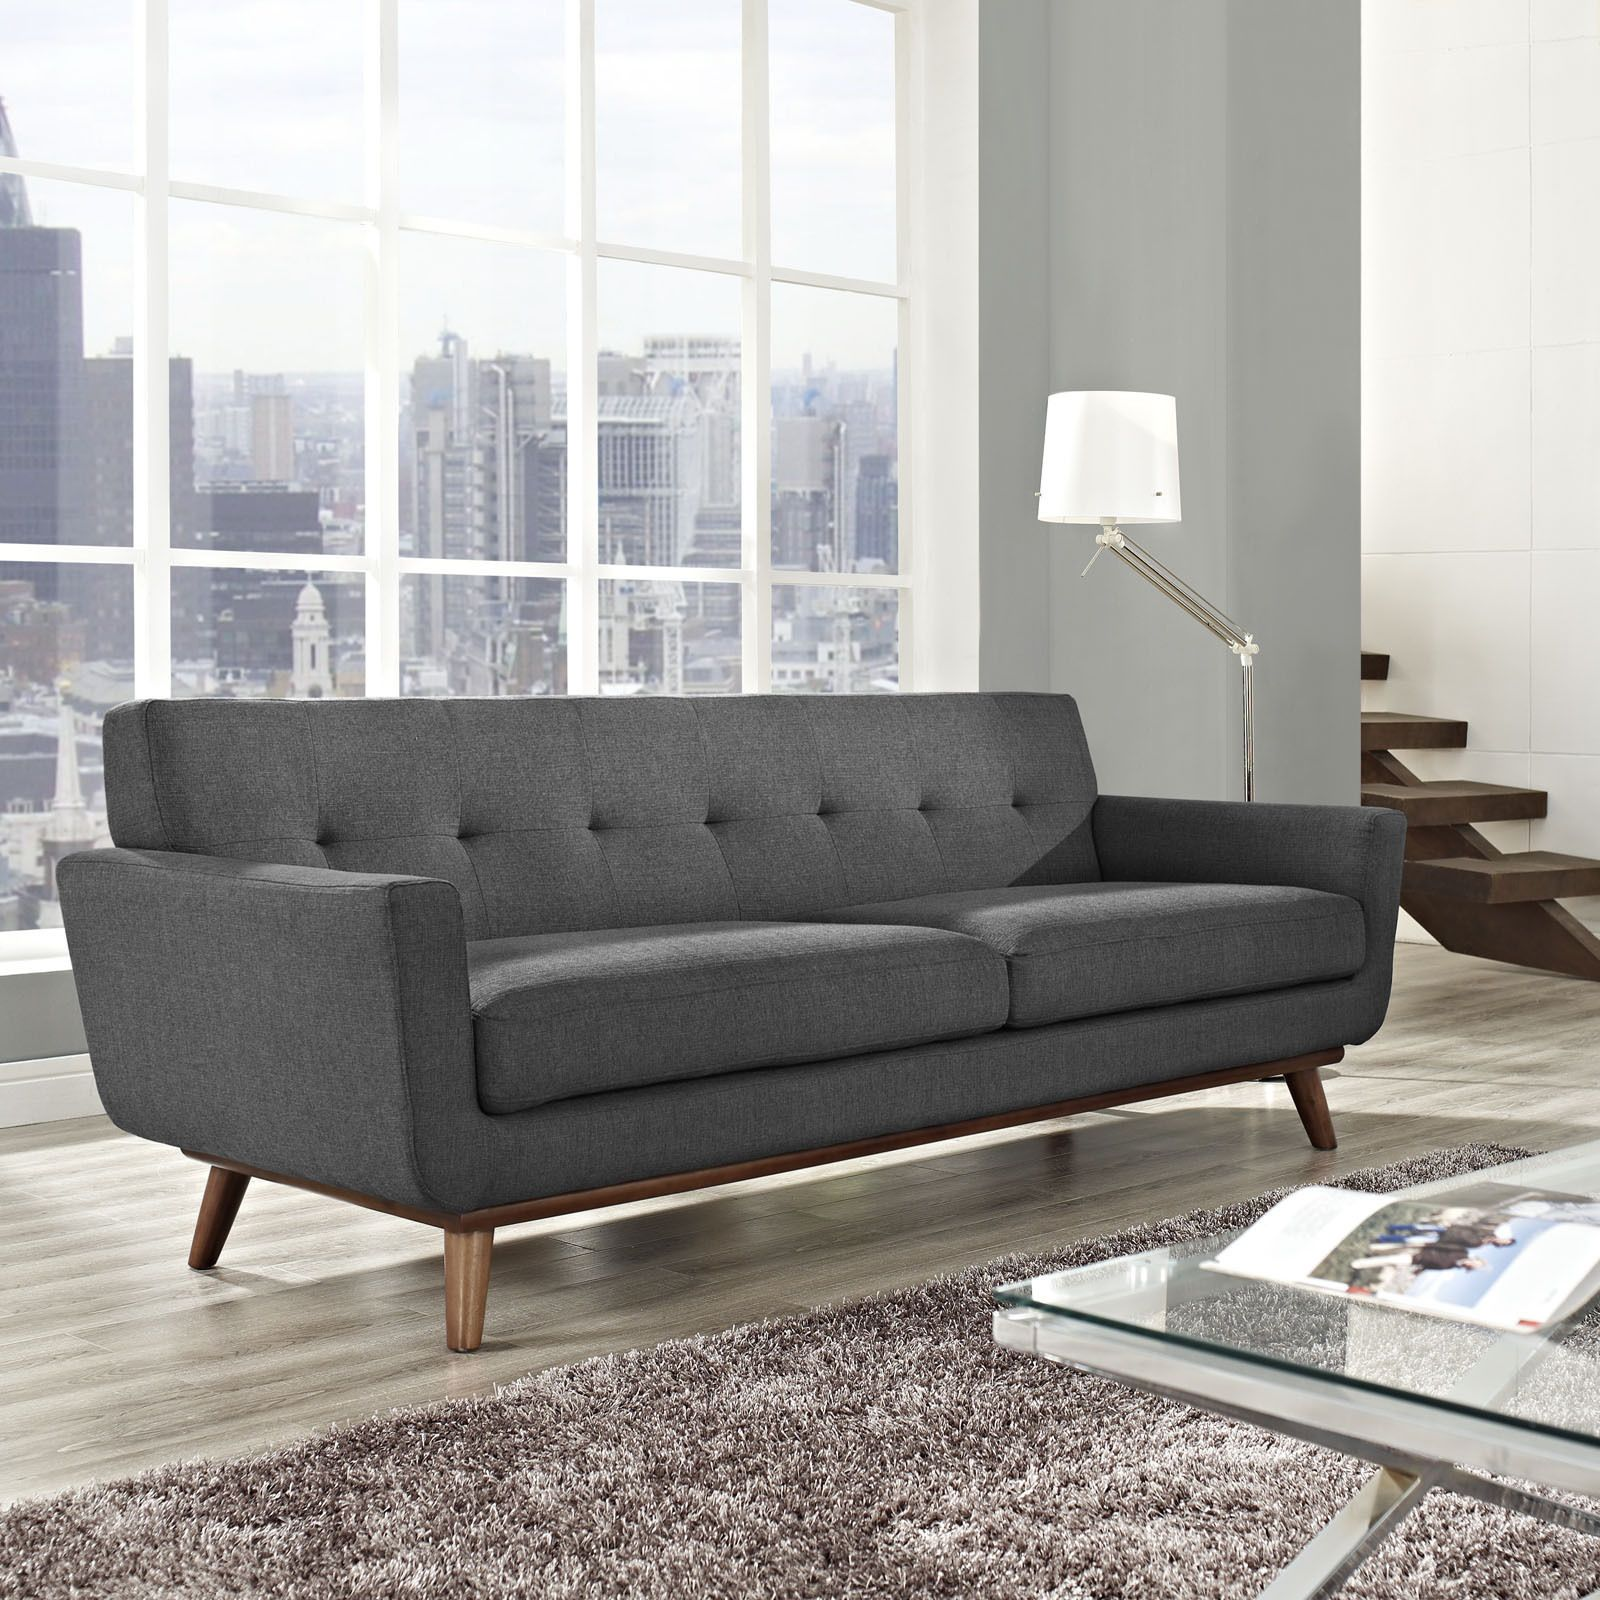 engage mid century sofamodway | long sofa, bold colors and